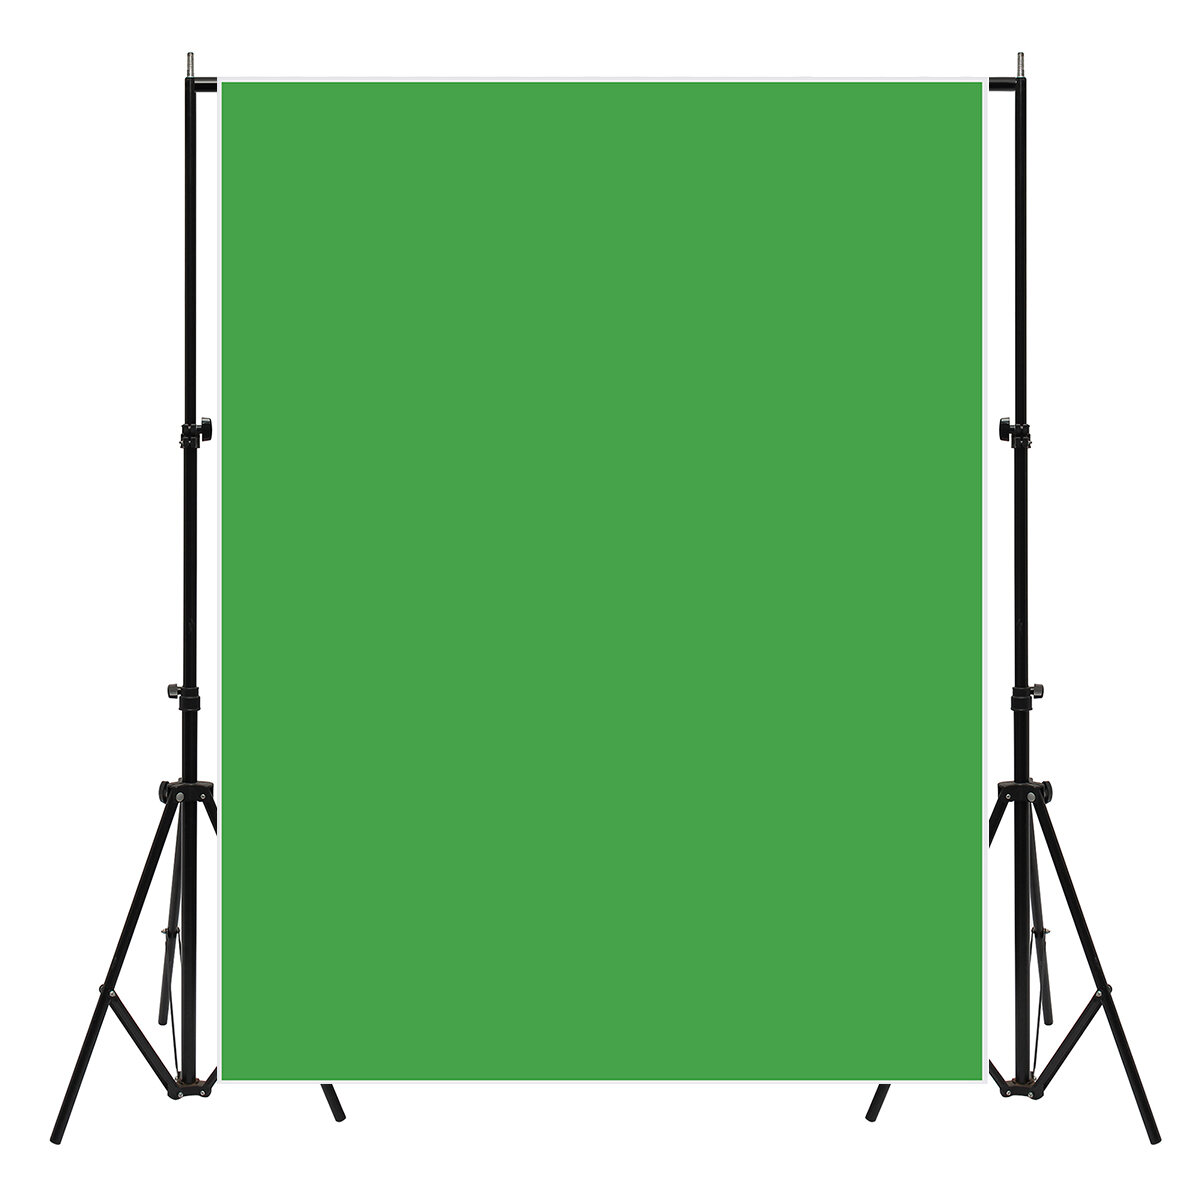 7X5FT Chromakey Green Photo Photography Backdrop Background Canvas Studio Props